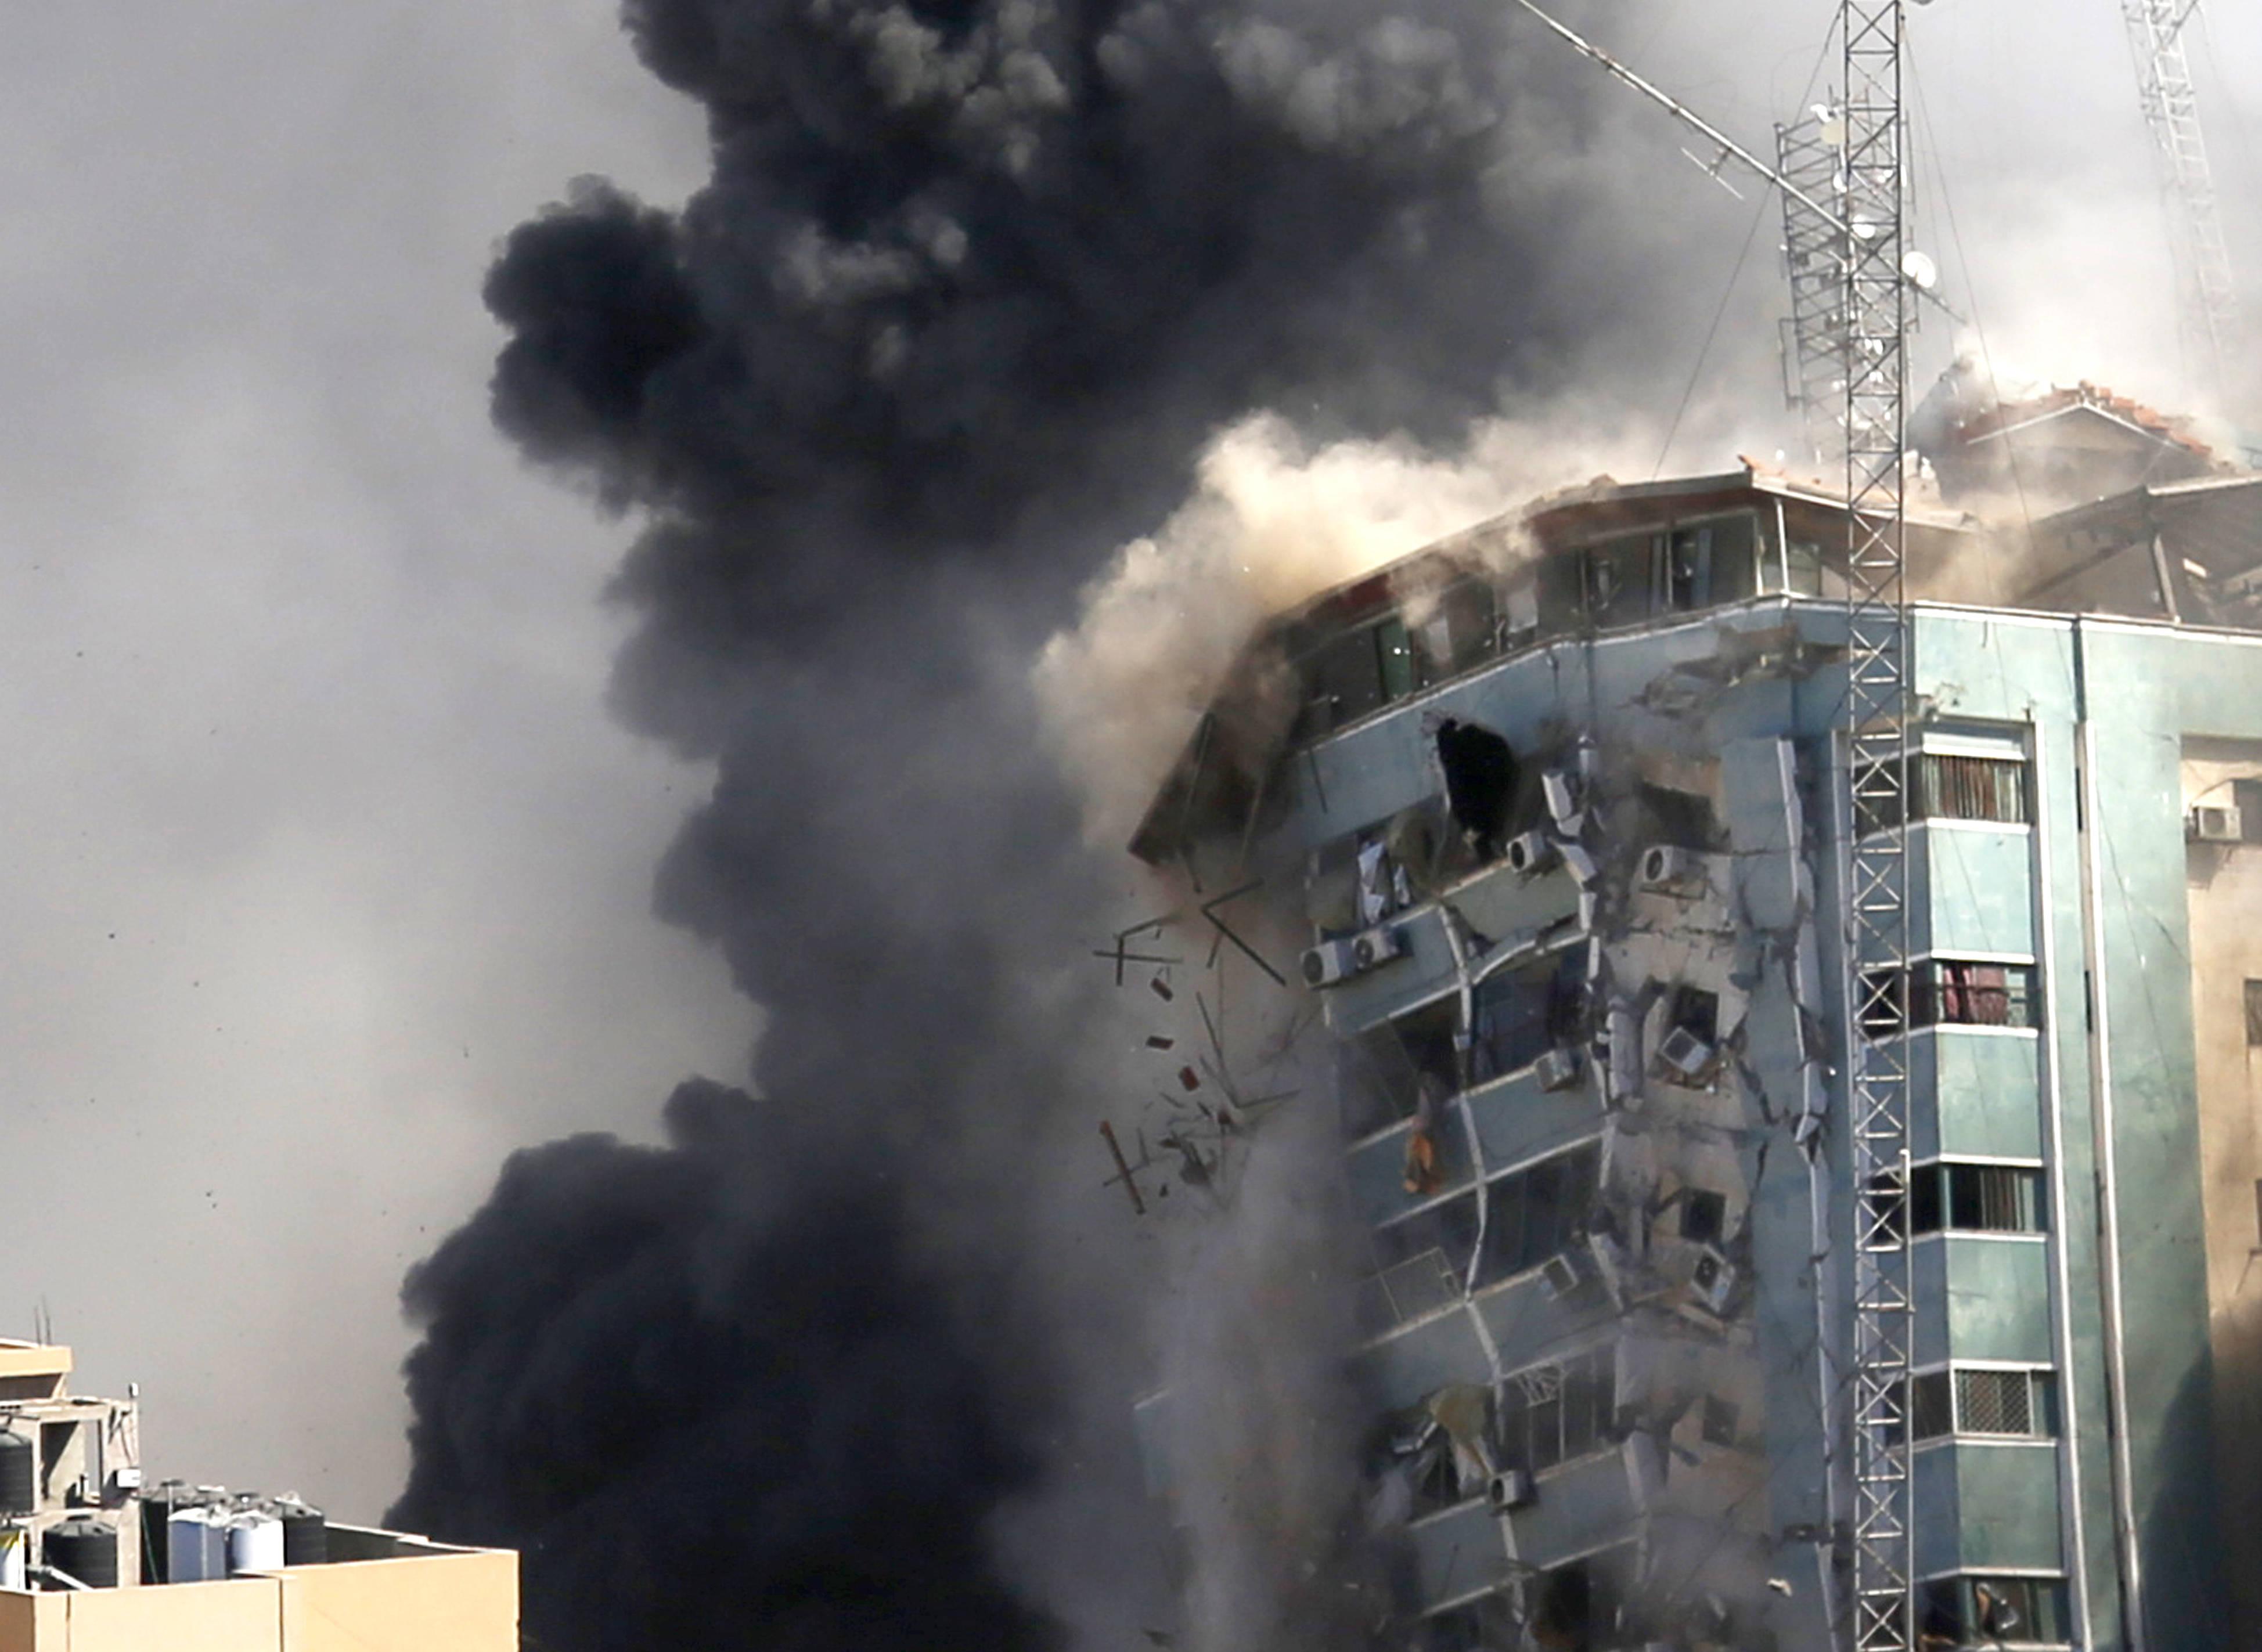 The building housing the offices of The Associated Press and other media in Gaza City collapses after it was hit by an Israeli airstrike Saturday, May 15, 2021.